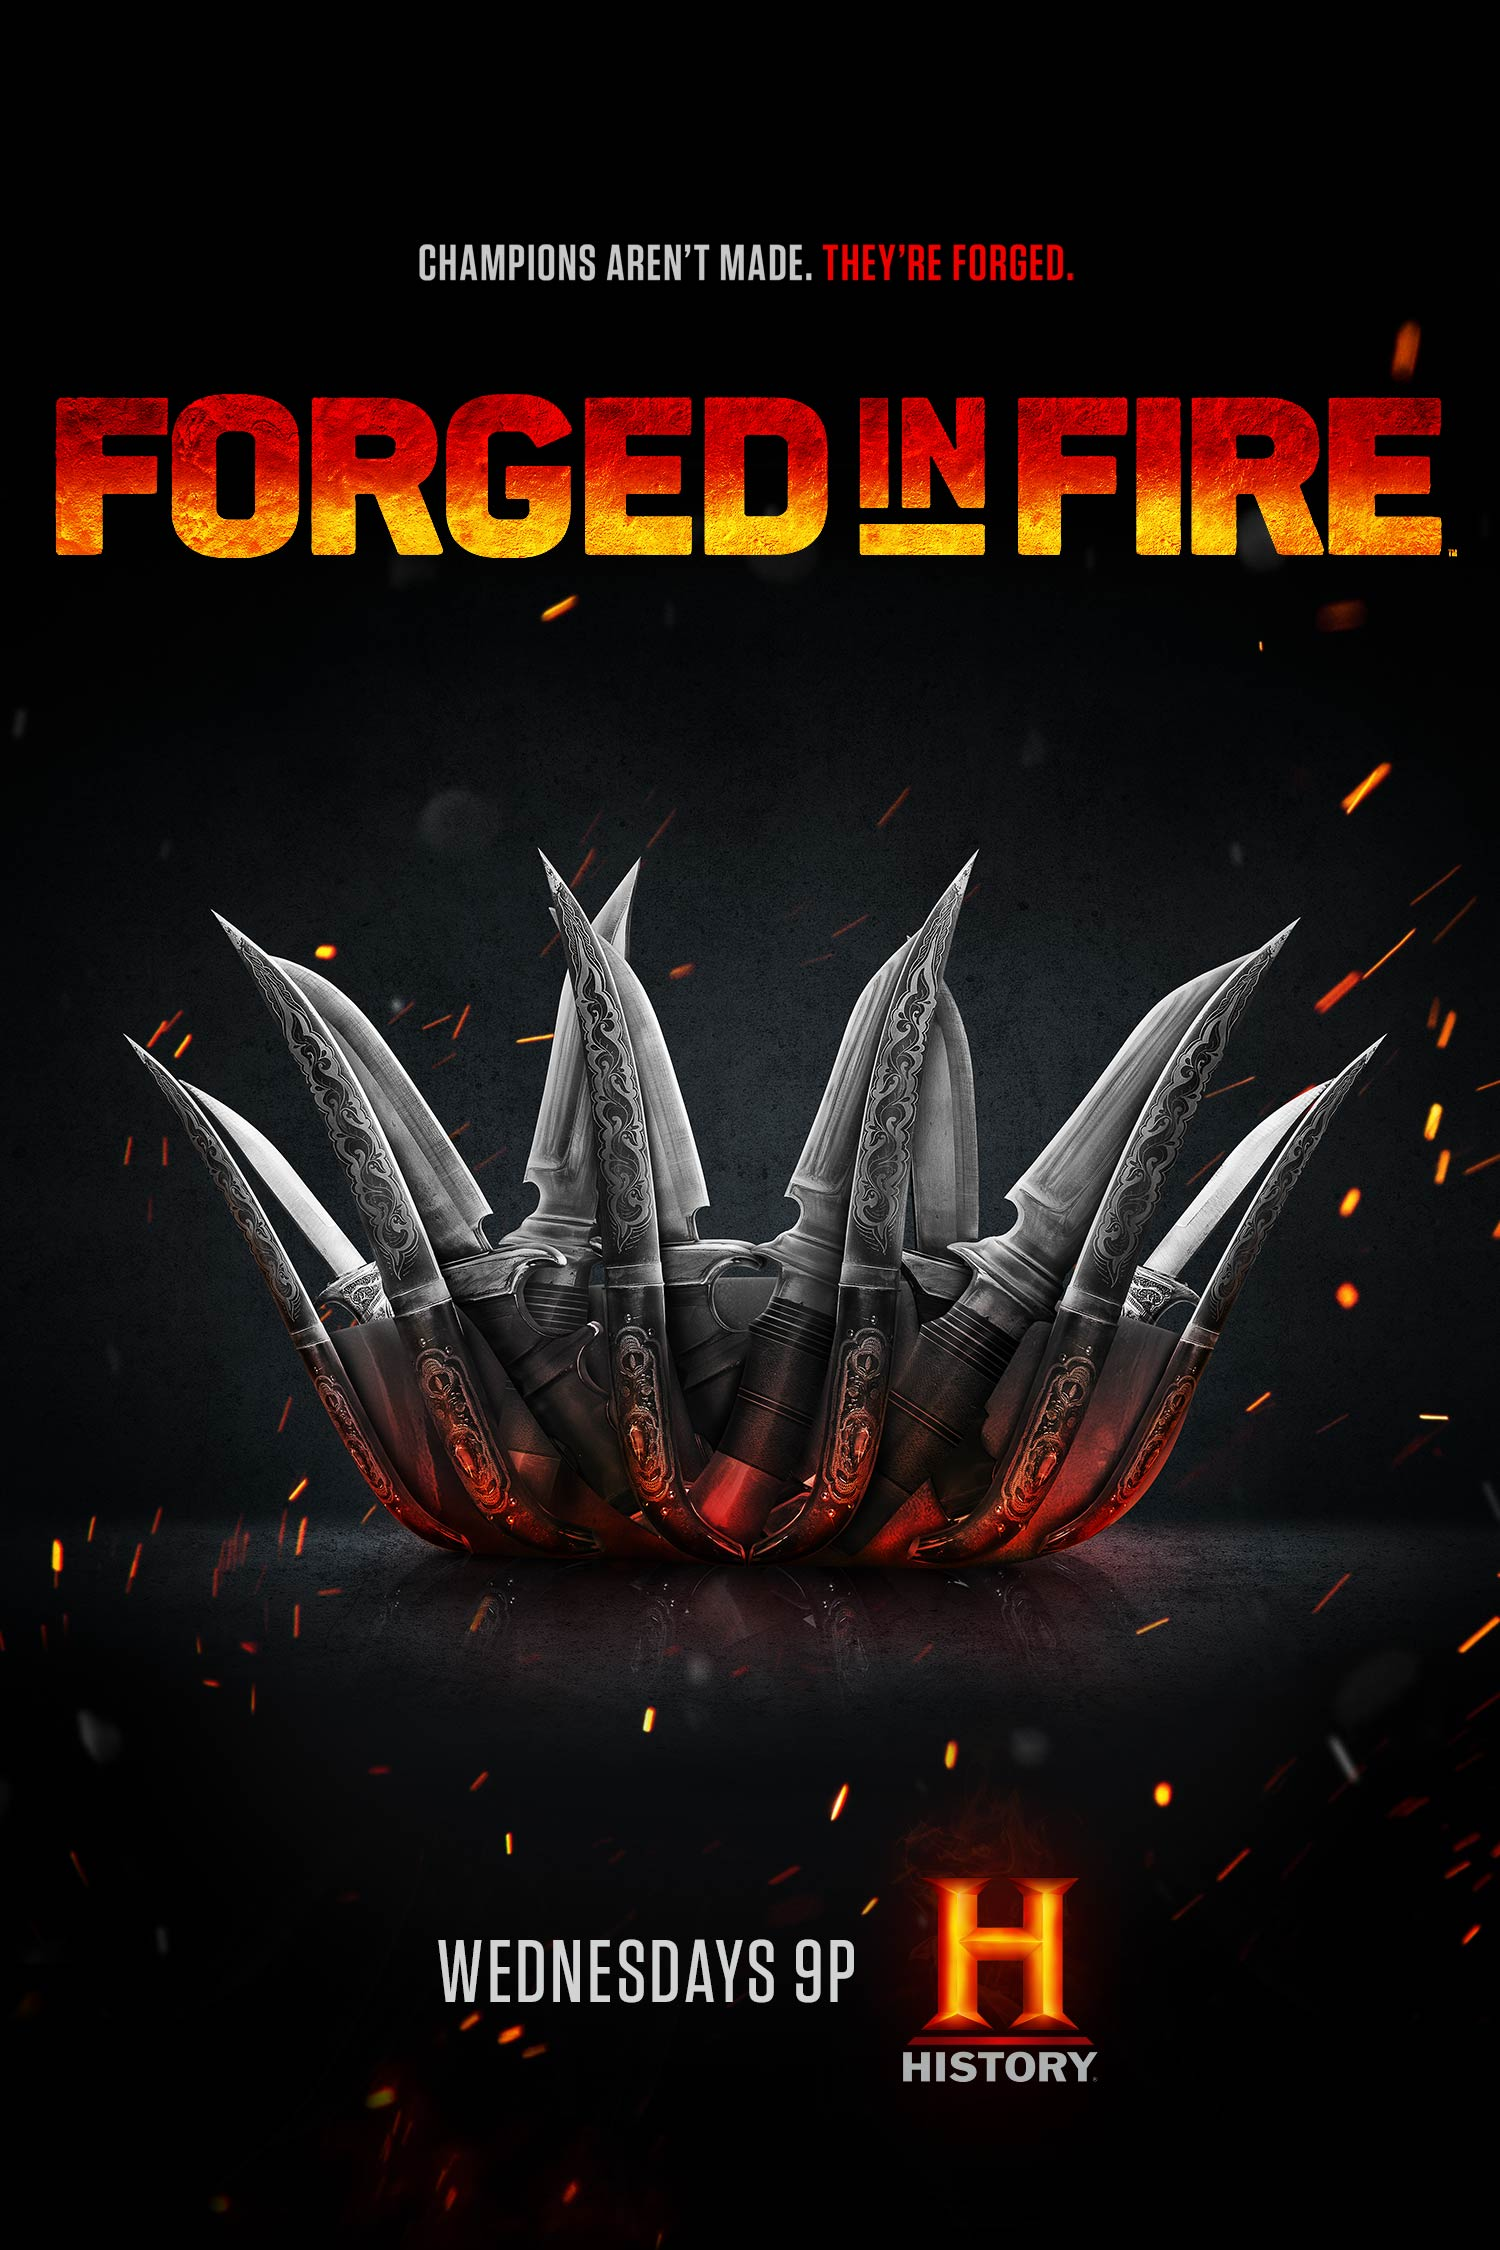 Forged_In_Fire_S5_Poster_1500px_330kb